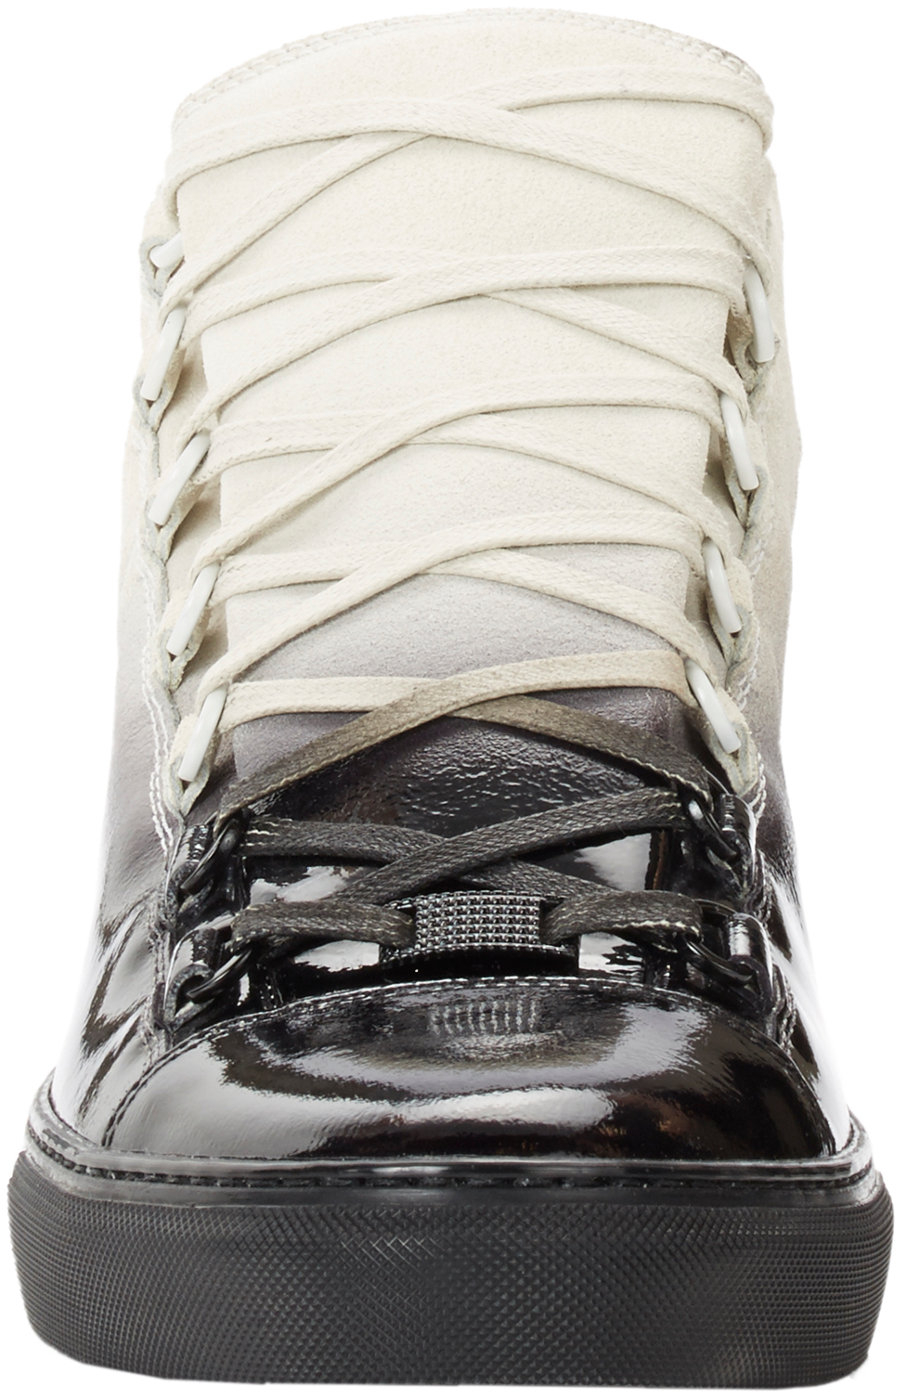 Rubber Rings For Men >> Balenciaga Ombré Arena High-Top Sneakers in Black for Men | Lyst